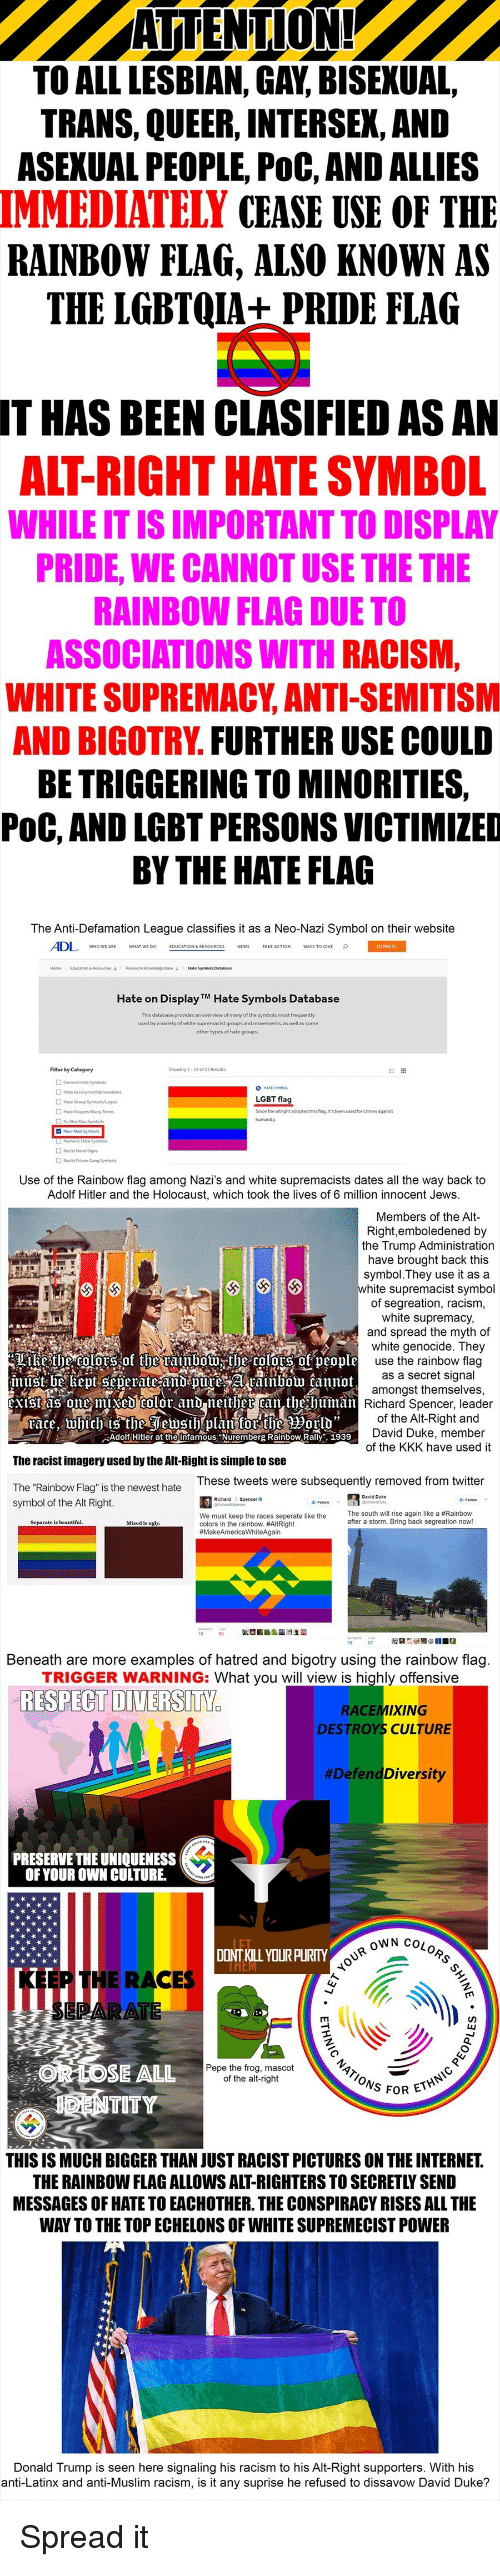 Gay and bisexual internet